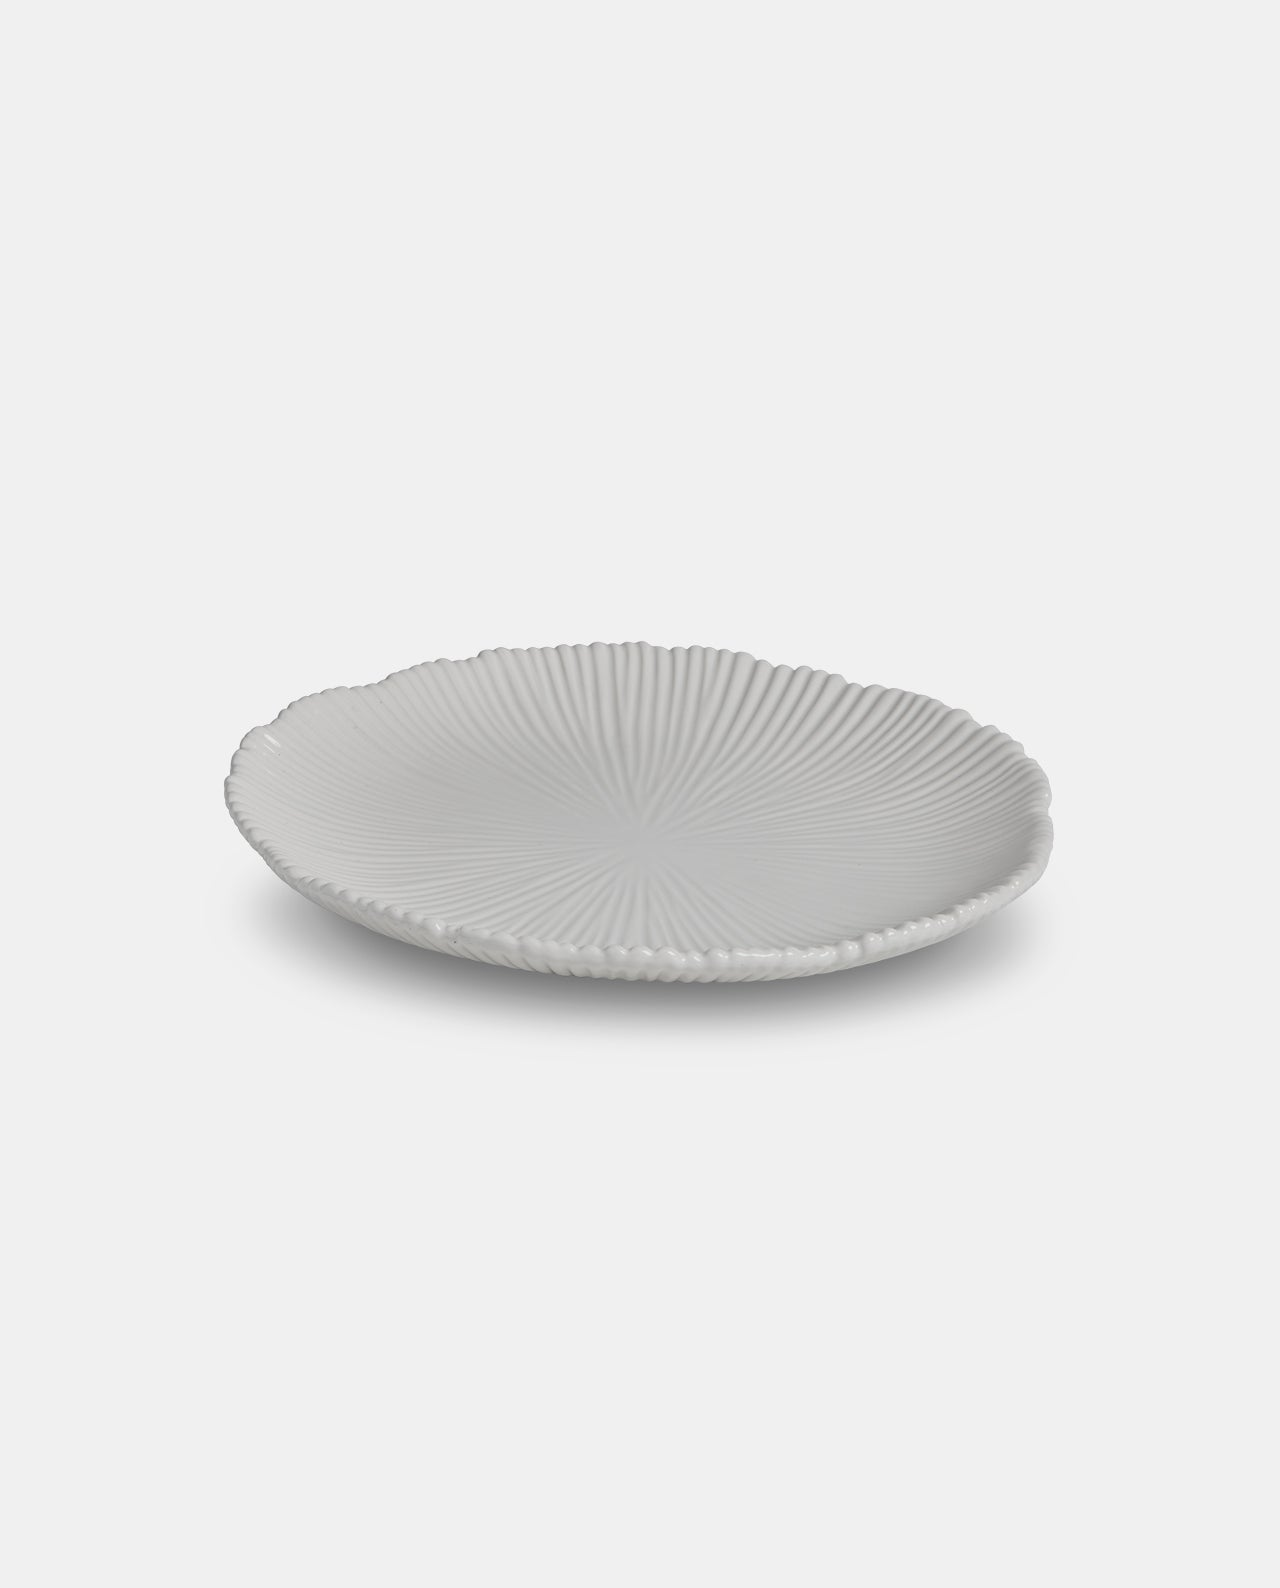 White Ceramic Dining Plate 28x28x3cm